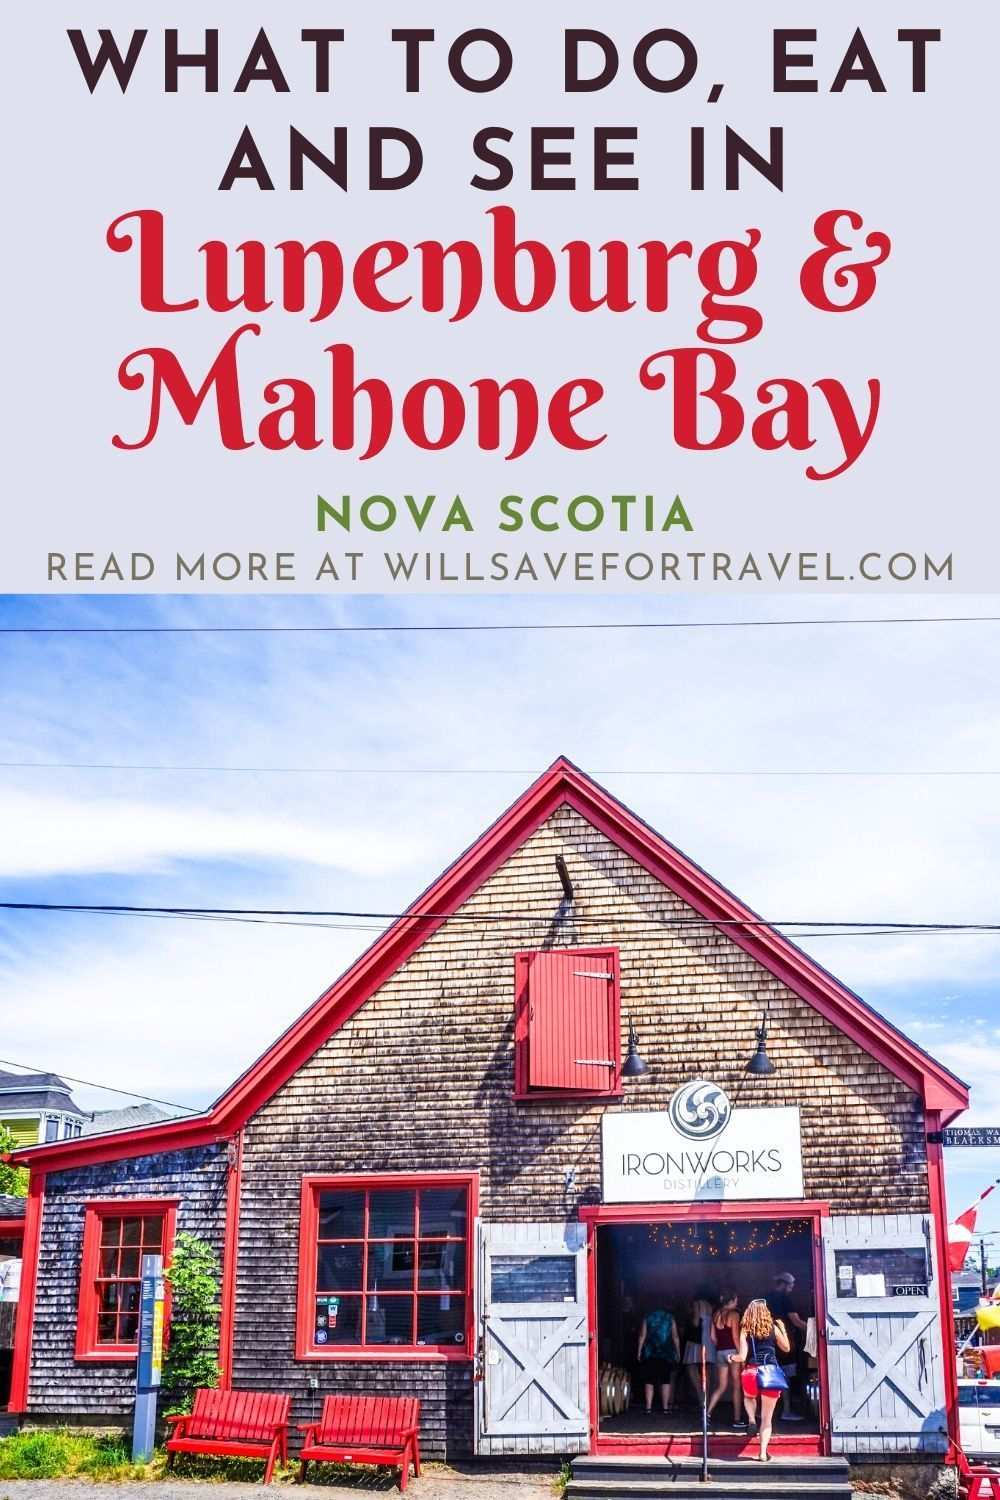 Lunenburg And Mahone Bay Day Trip Will Save For Travel